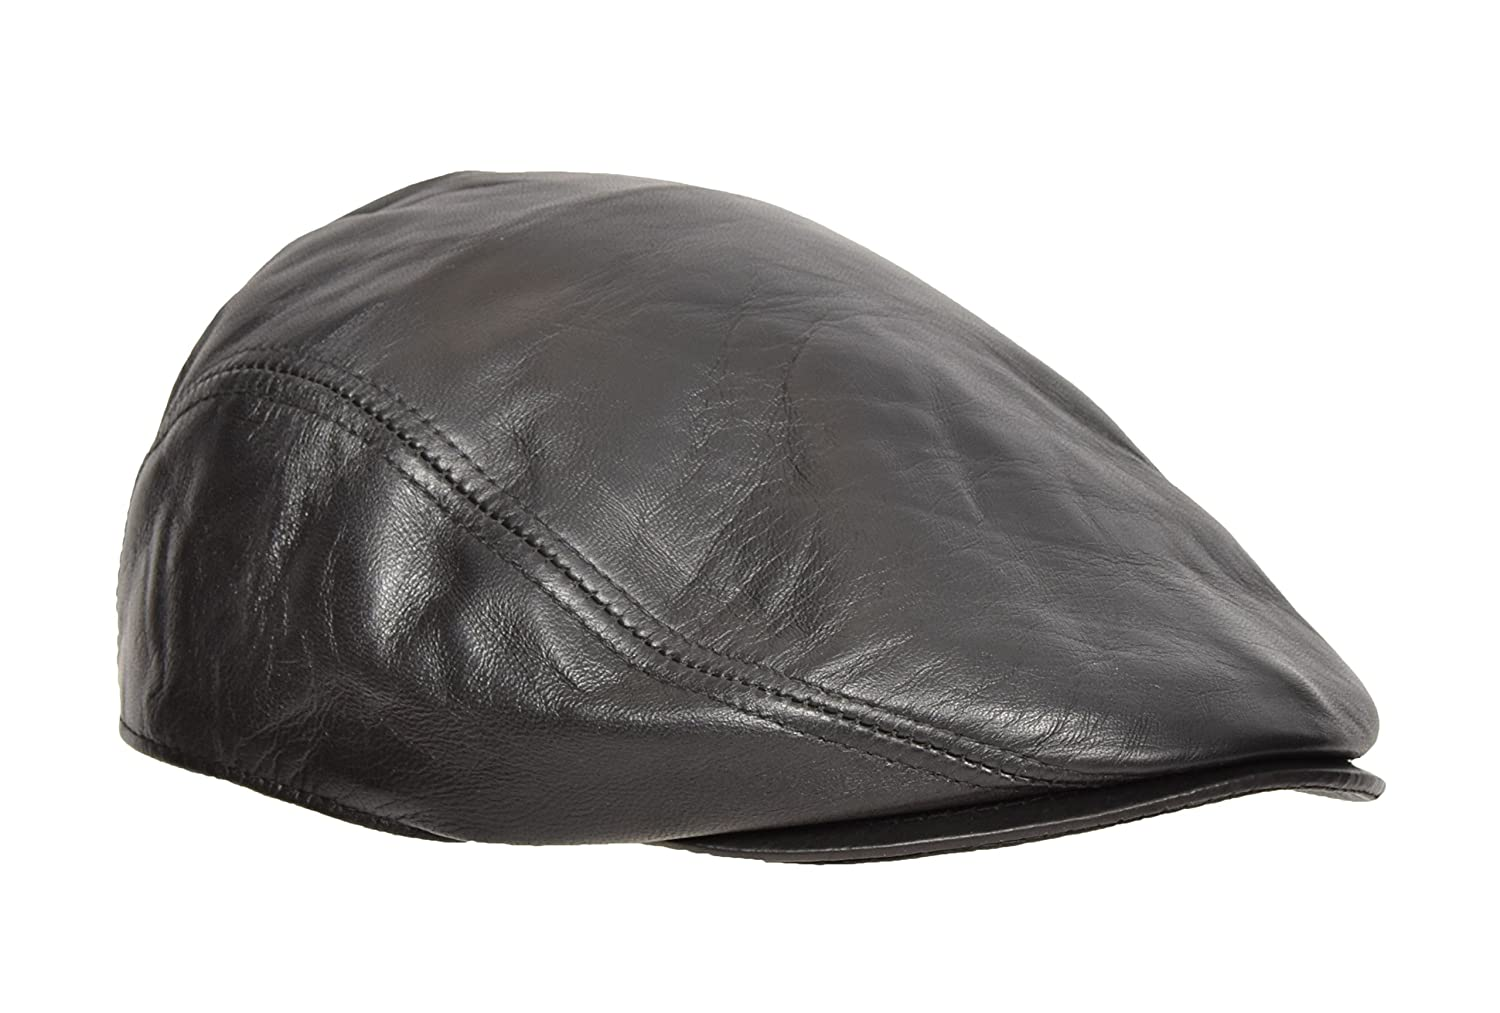 Real Soft Leather Flat Cap Cabbie Gatsby Hunting Peaked Newsboy Hat Black